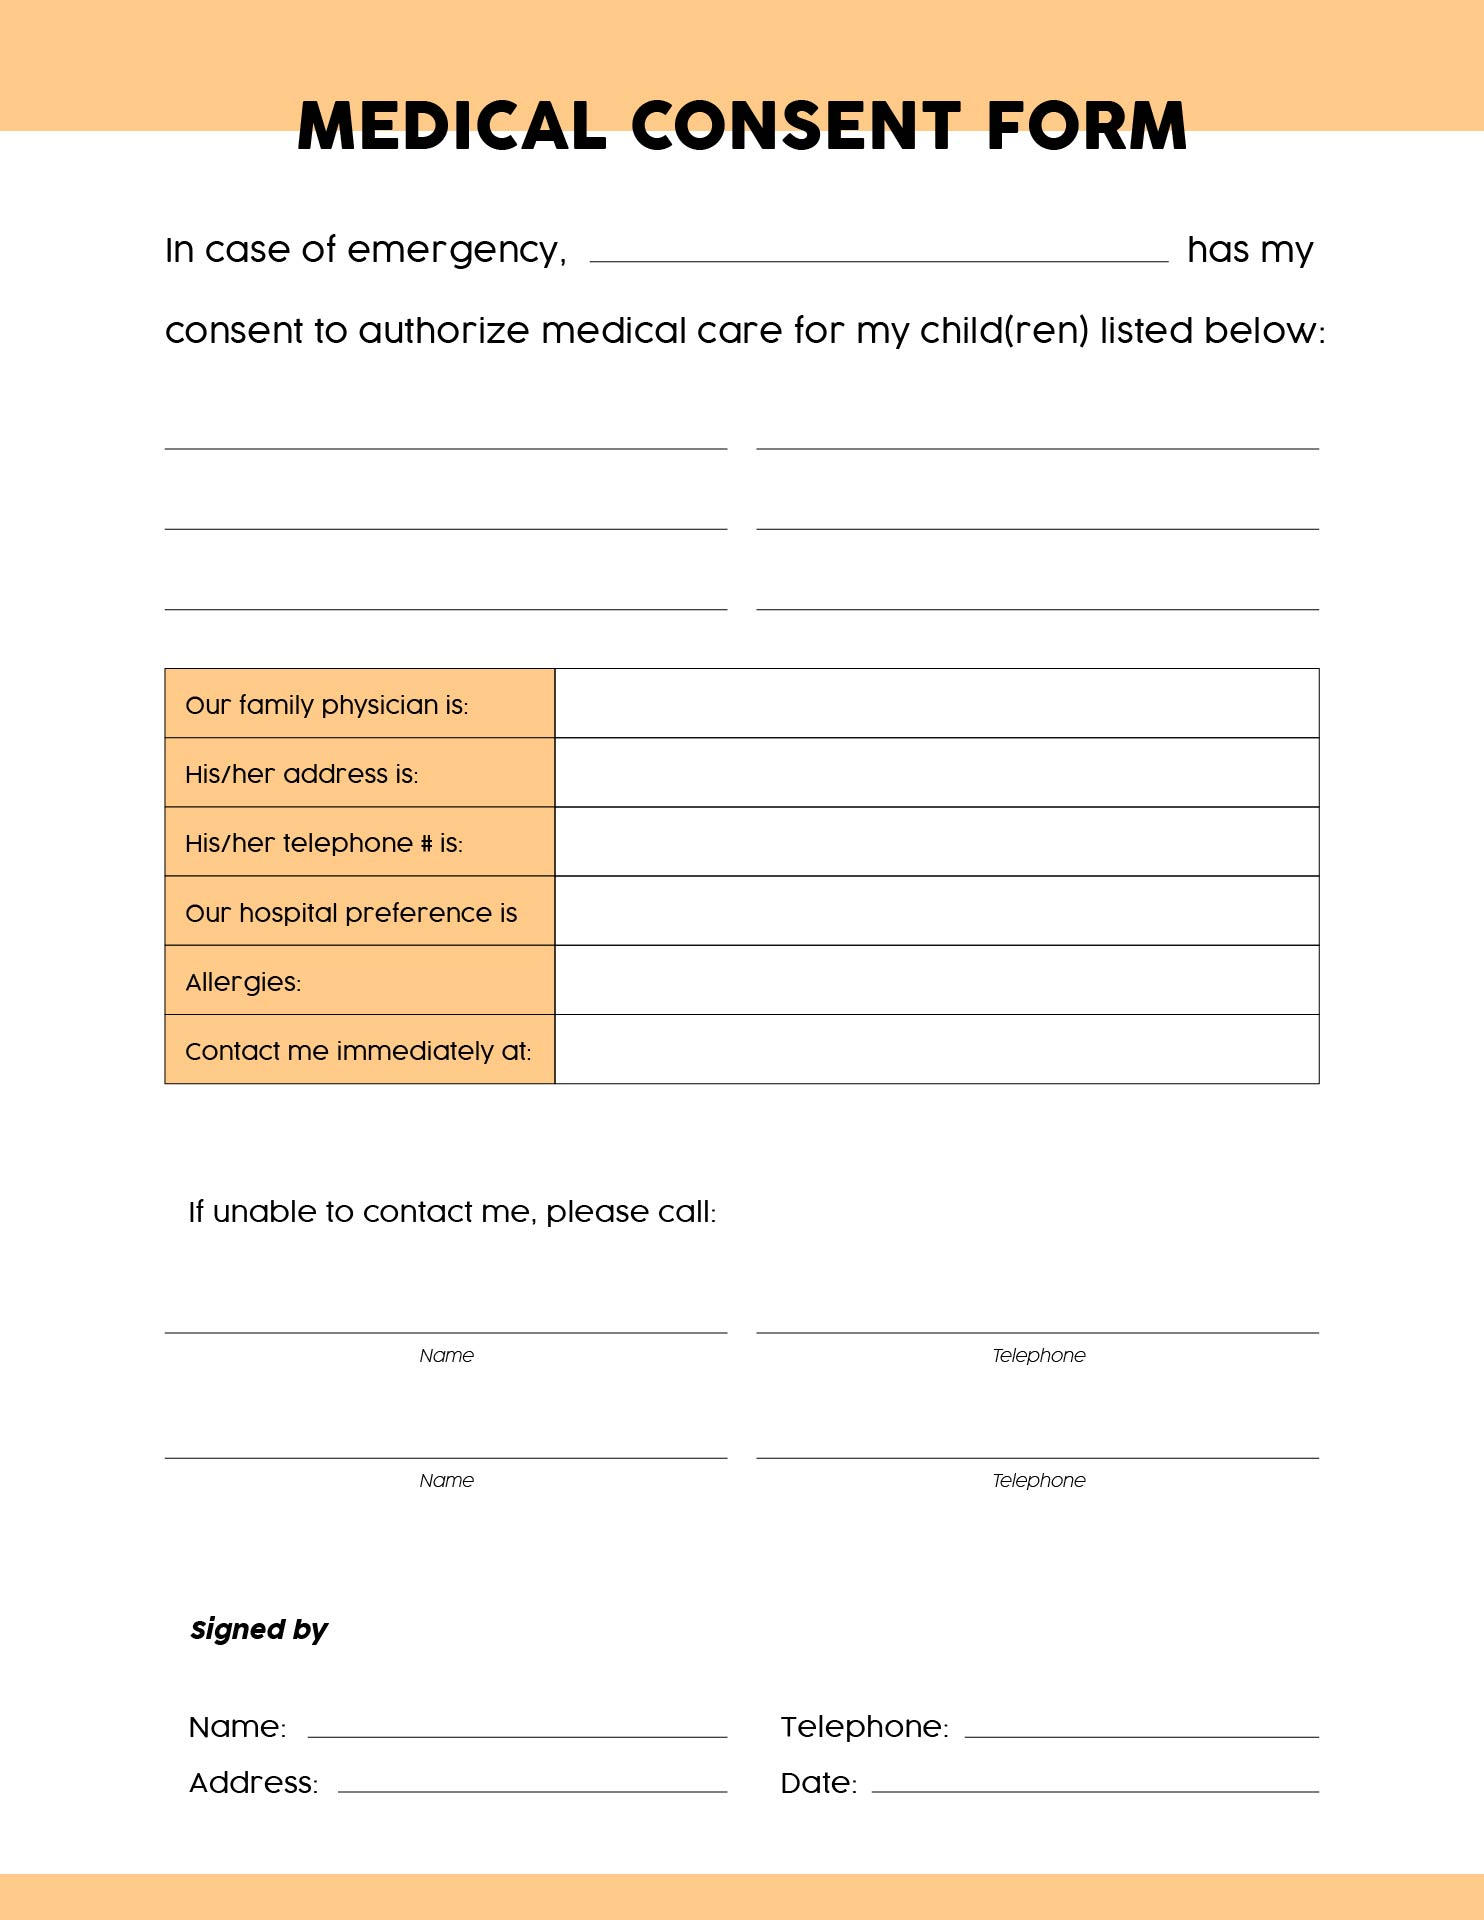 consent form thesis The consent form research participants sign should cover the following main   may be shared with colleagues through the internet, appear in a dissertation,.